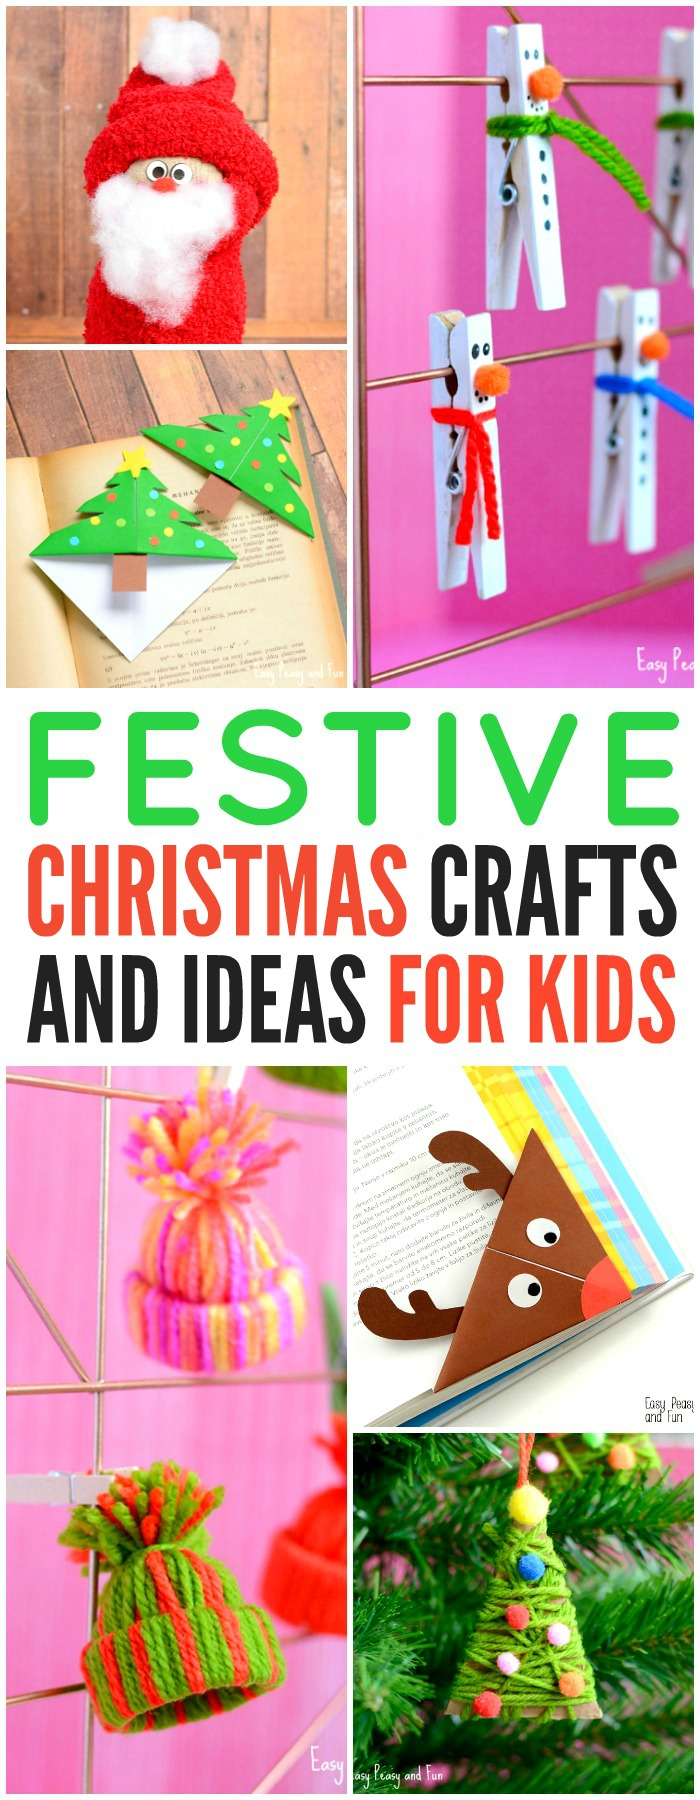 Festive Christmas Crafts For Kids - Tons Of Art And Crafting